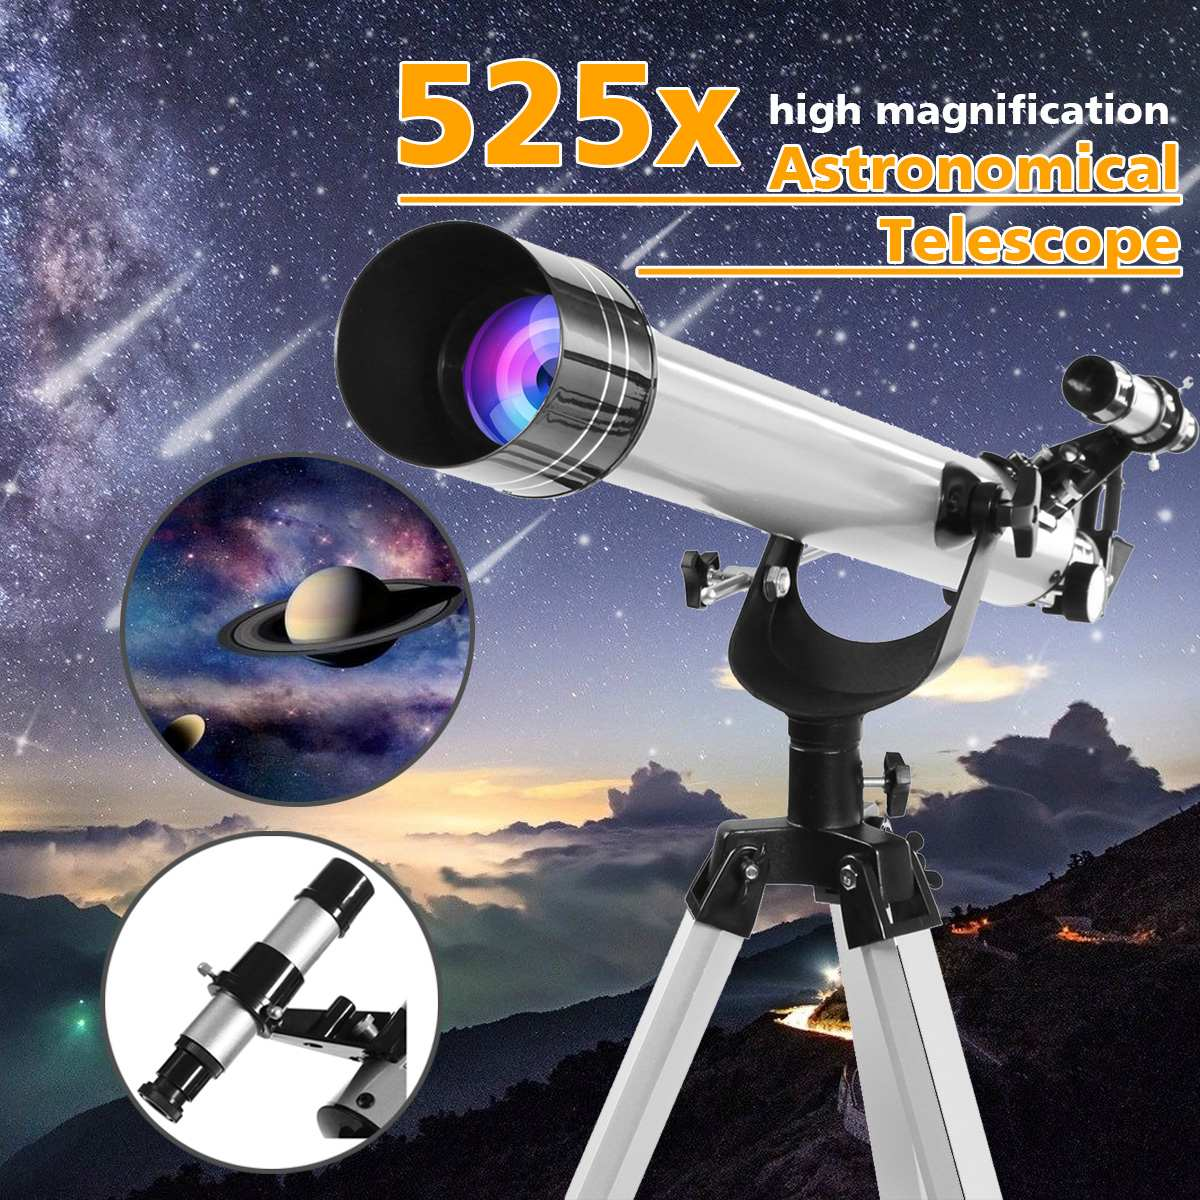 Eyepieces Scope Astronomical Refractive Observation F60700 525x Tripod-Space High-Magnification